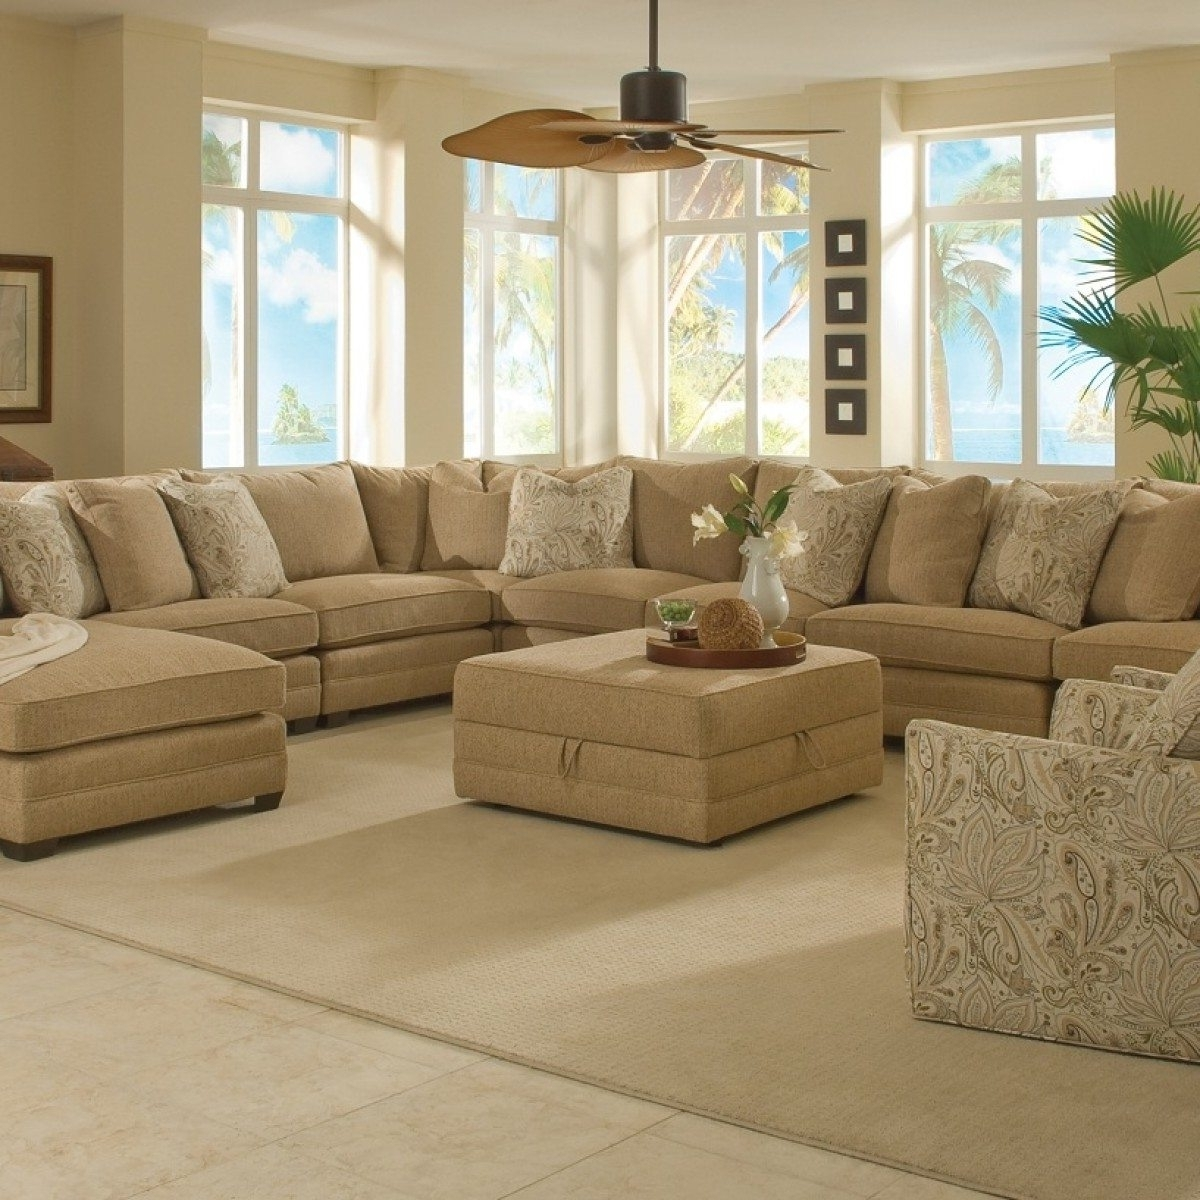 Couches With Large Ottoman In Widely Used Sectional Sofa Design: Large Sofa Sectionals Chaise Bed Extra (View 4 of 15)